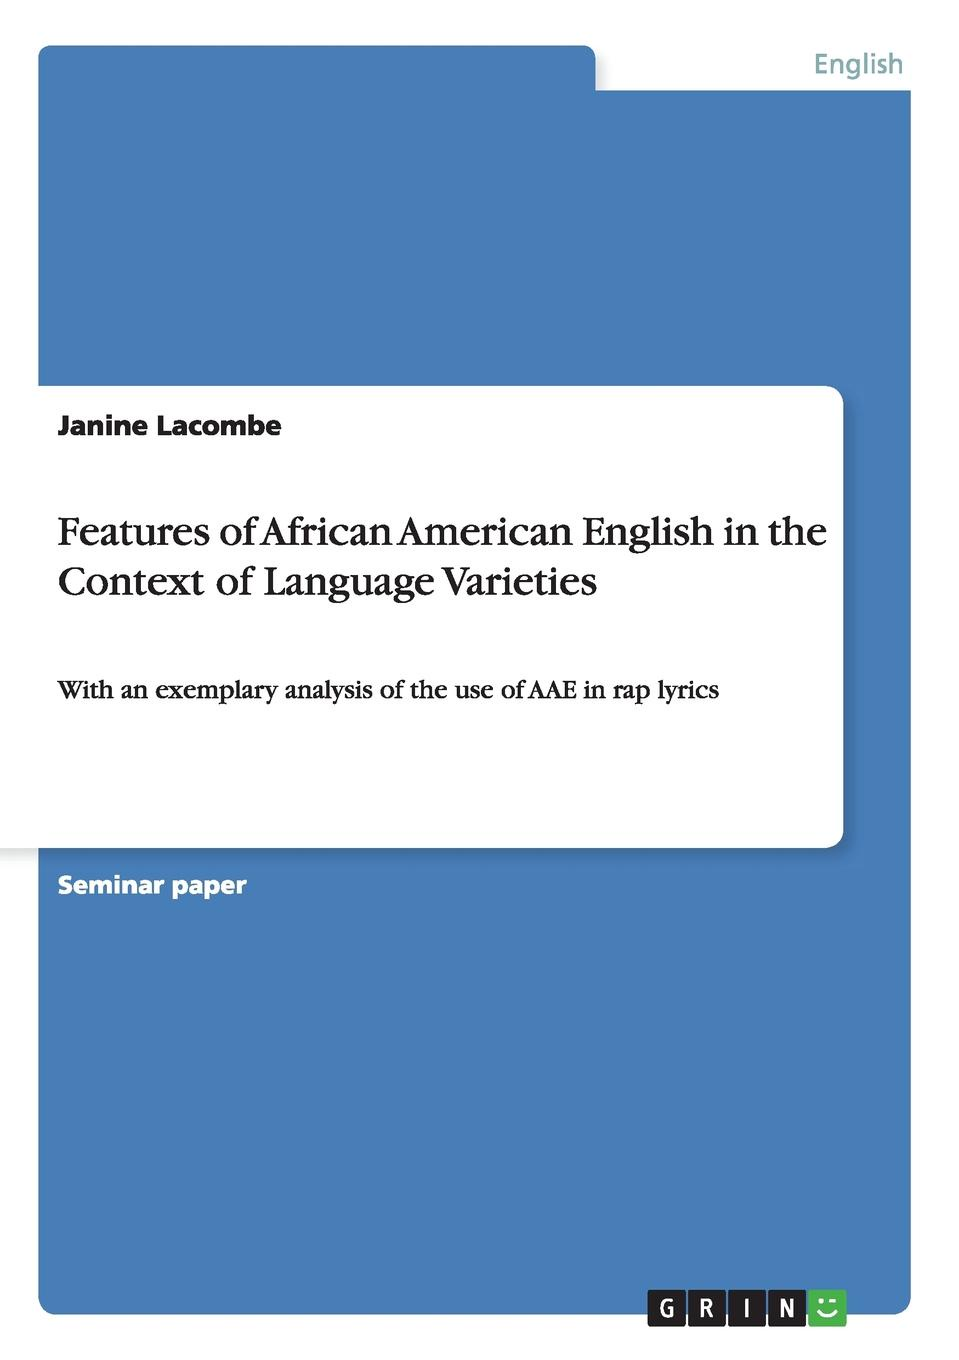 цены на Janine Lacombe Features of African American English in the Context of Language Varieties  в интернет-магазинах